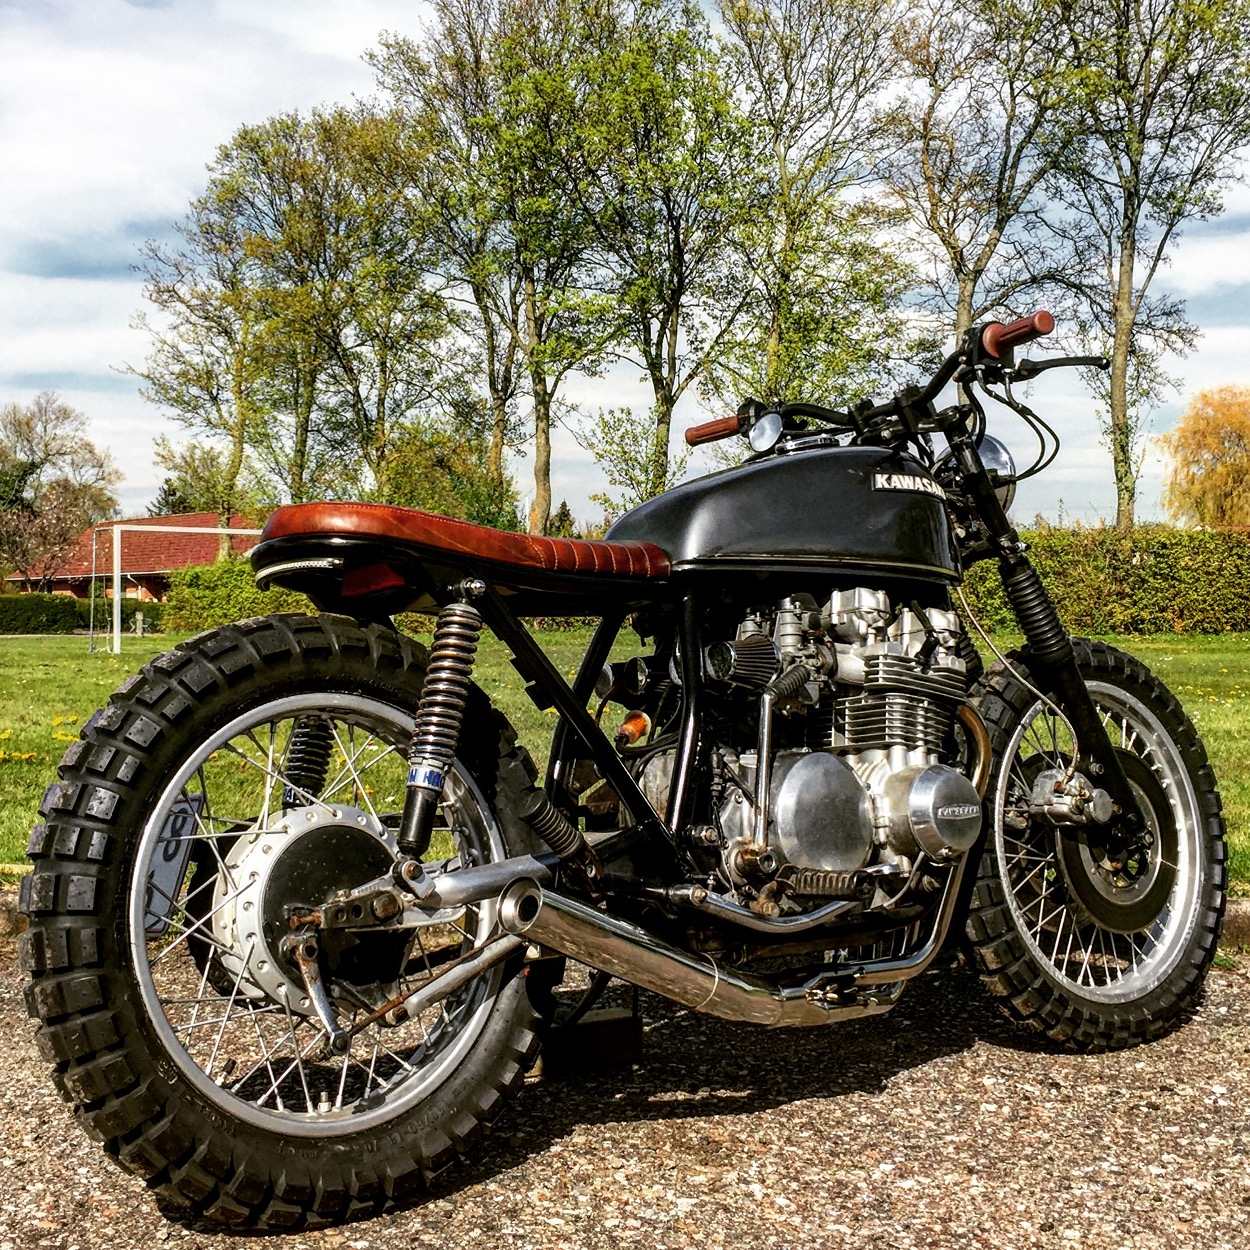 My Motorcycle Is A Private Project Between Me And Father Just Good Times In The Garage Kawasaki KZ650 Scrambler